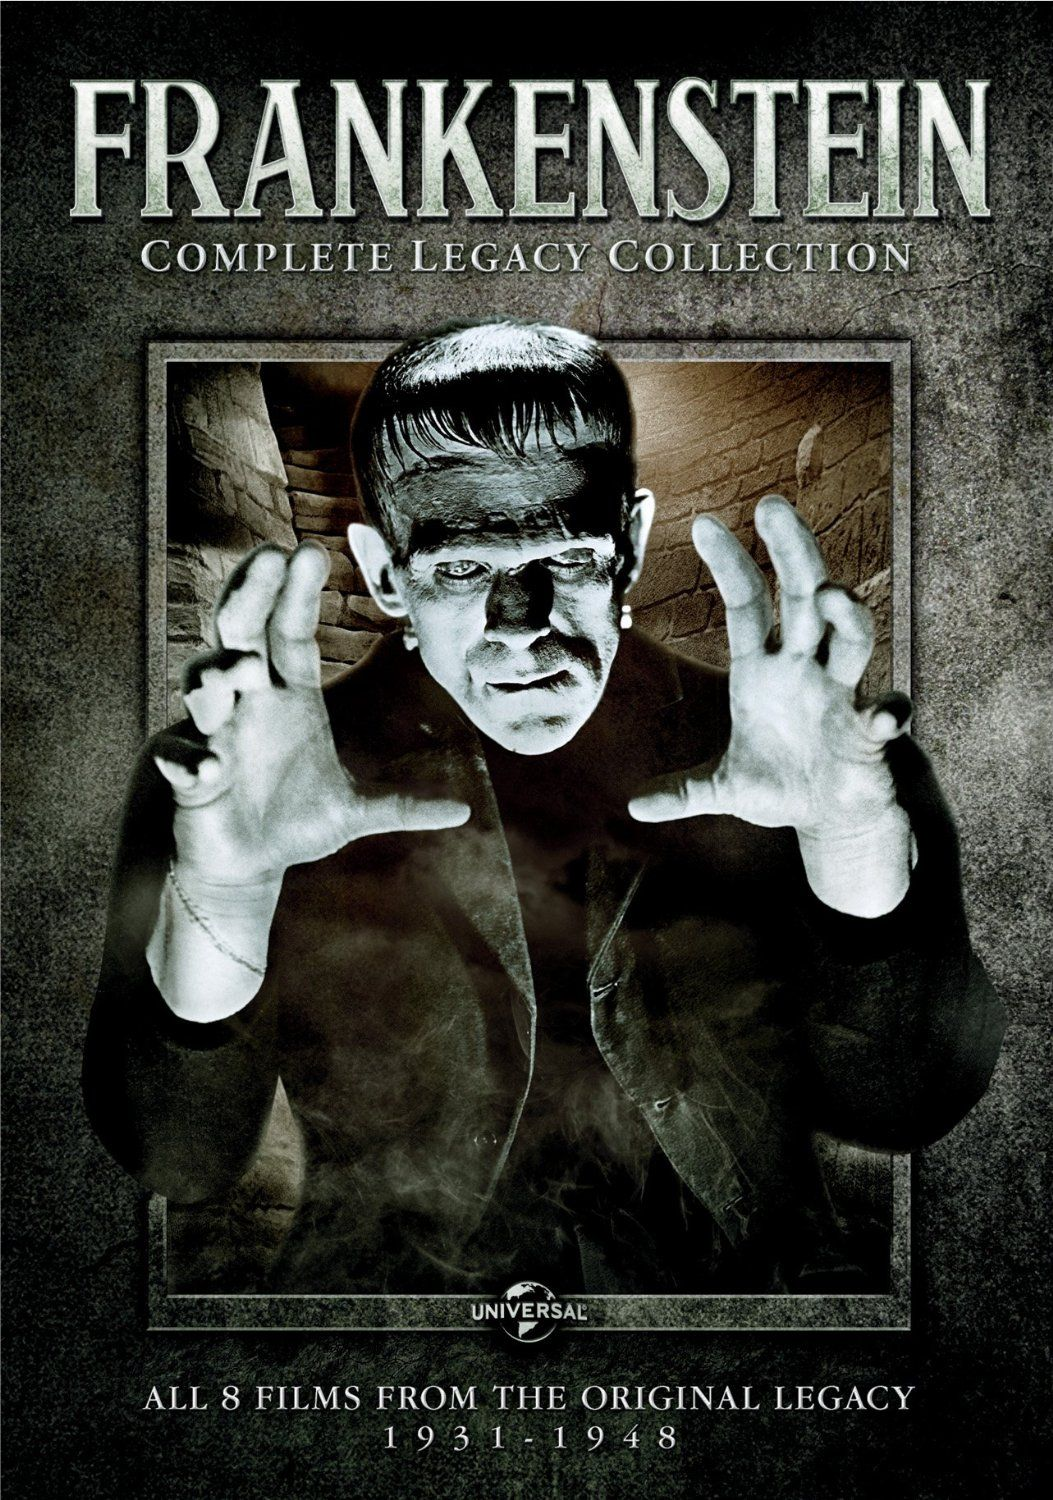 HALLOWEEN MOVIES: Wow, here's one for classic Halloween movie fans ...